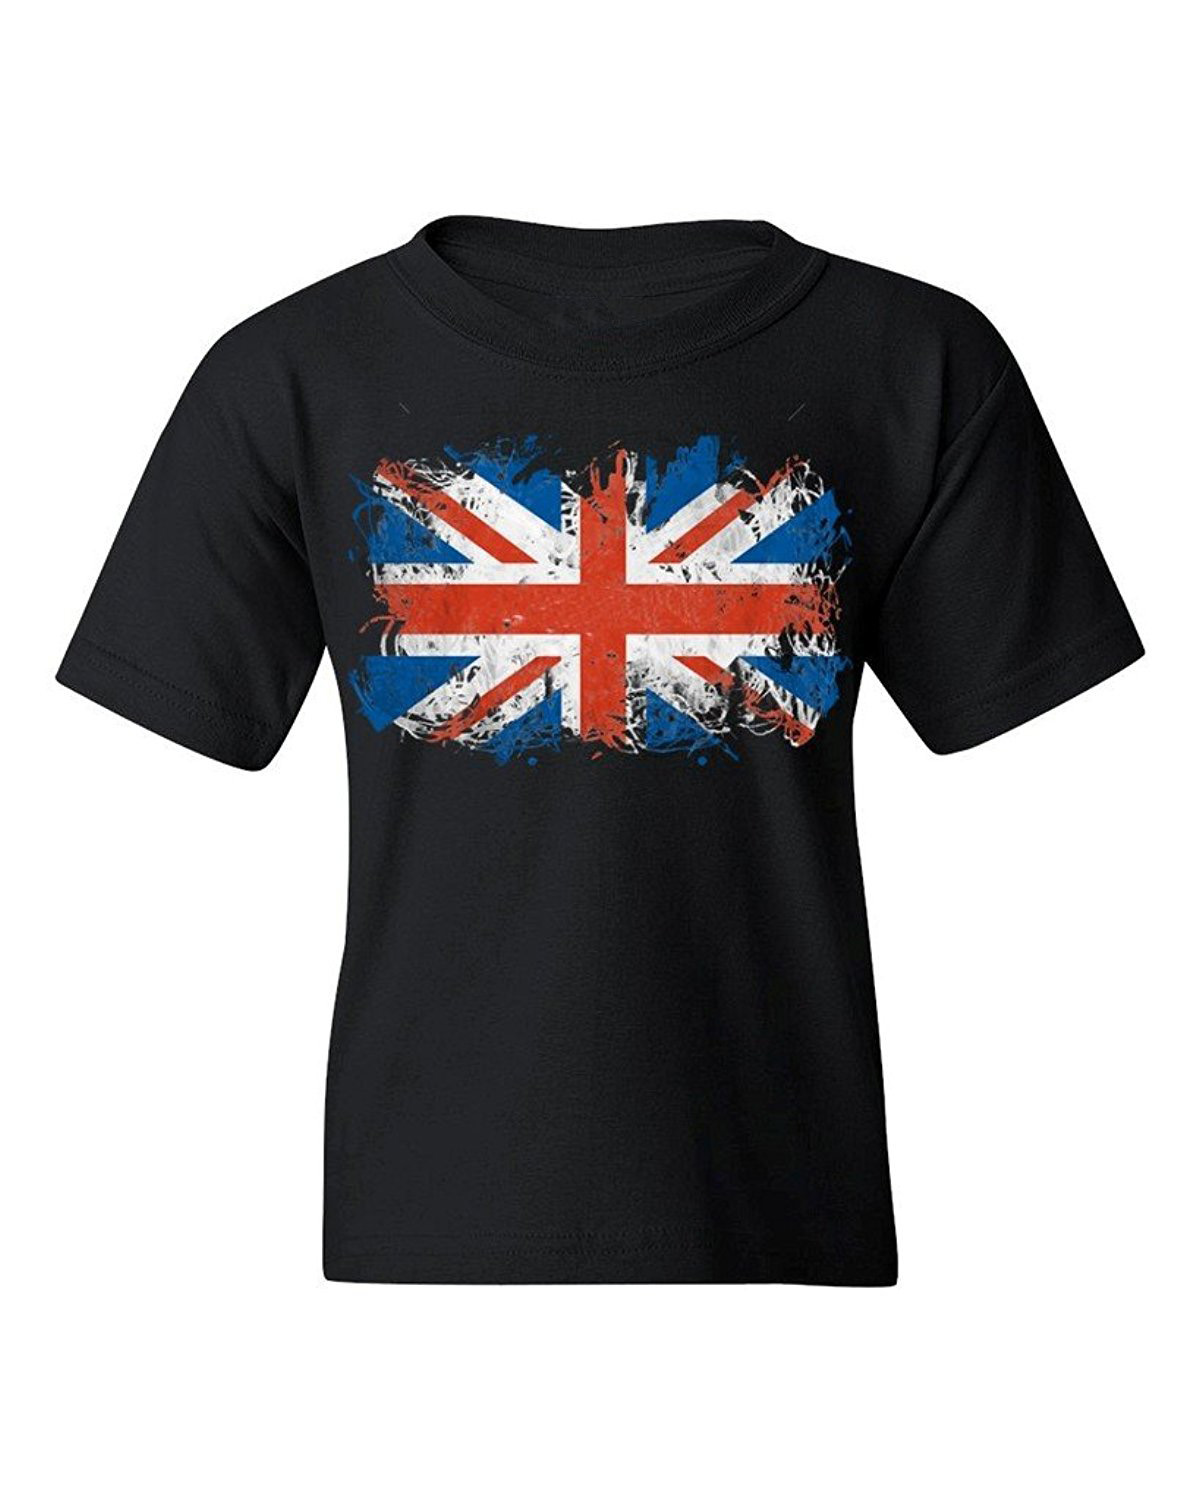 High Quality T-Shirt Short Sleeve T Shirt Union Jack British Flag Youth'S T-Shirt United Kingdom Flag Top Tee Shirts